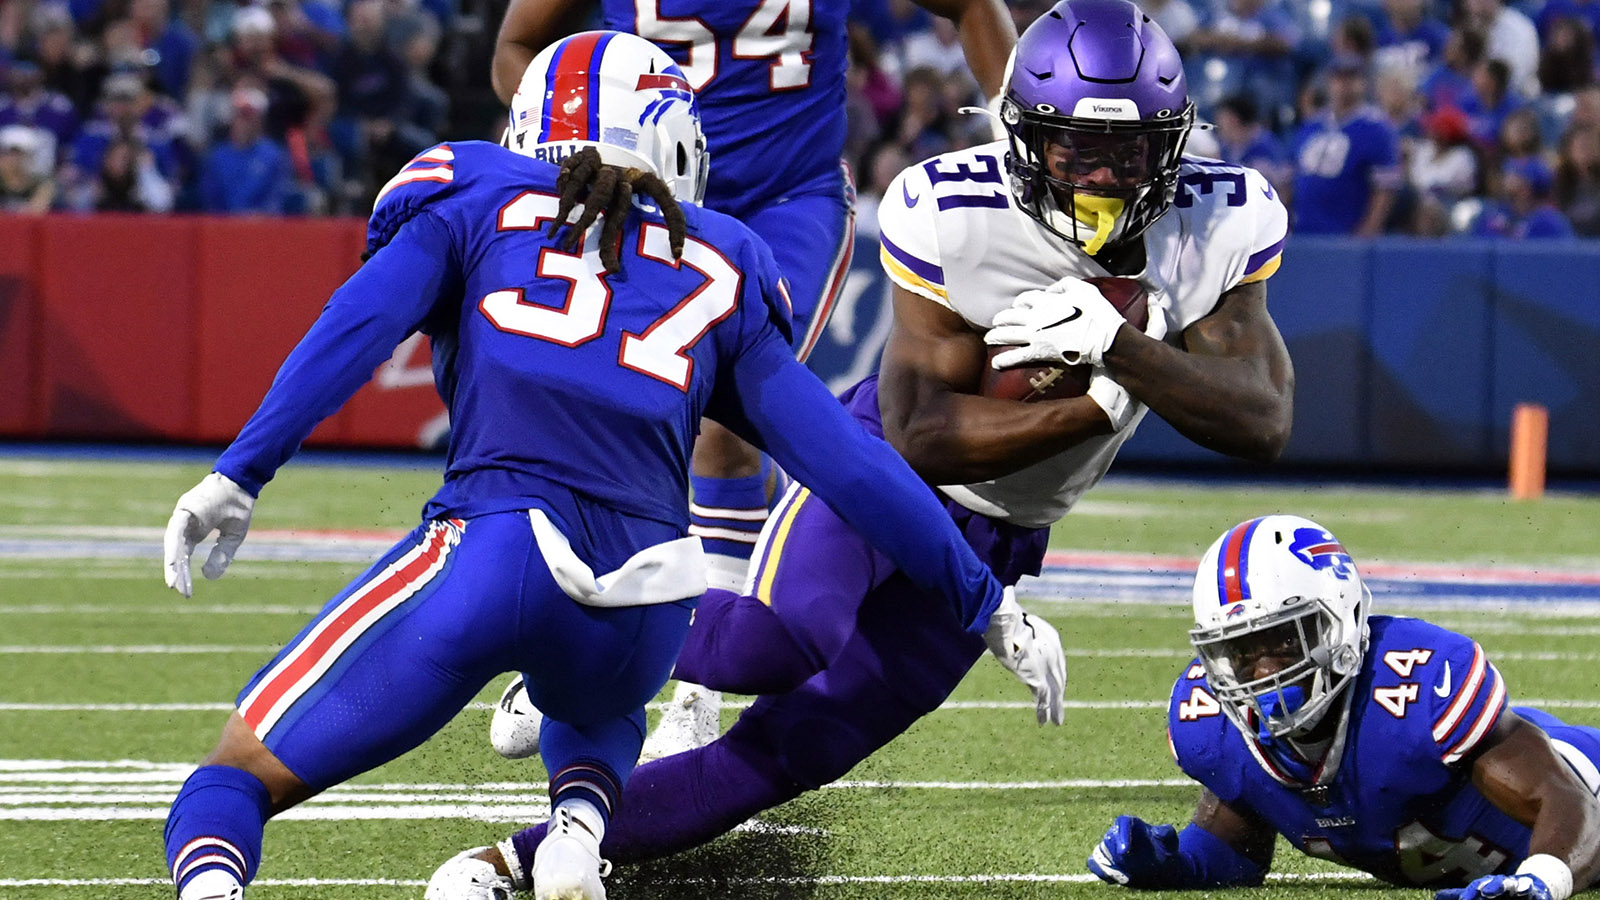 Aug 29, 2019; Orchard Park, NY, USA; Minnesota Vikings running back Ameer Abdullah (31) tries to run between Buffalo Bills defensive back Denzel Rice (37) and linebacker Deon Lacey (44)  in the second quarter at New Era Field. Mandatory Credit: Mark Konezny-USA TODAY Sports